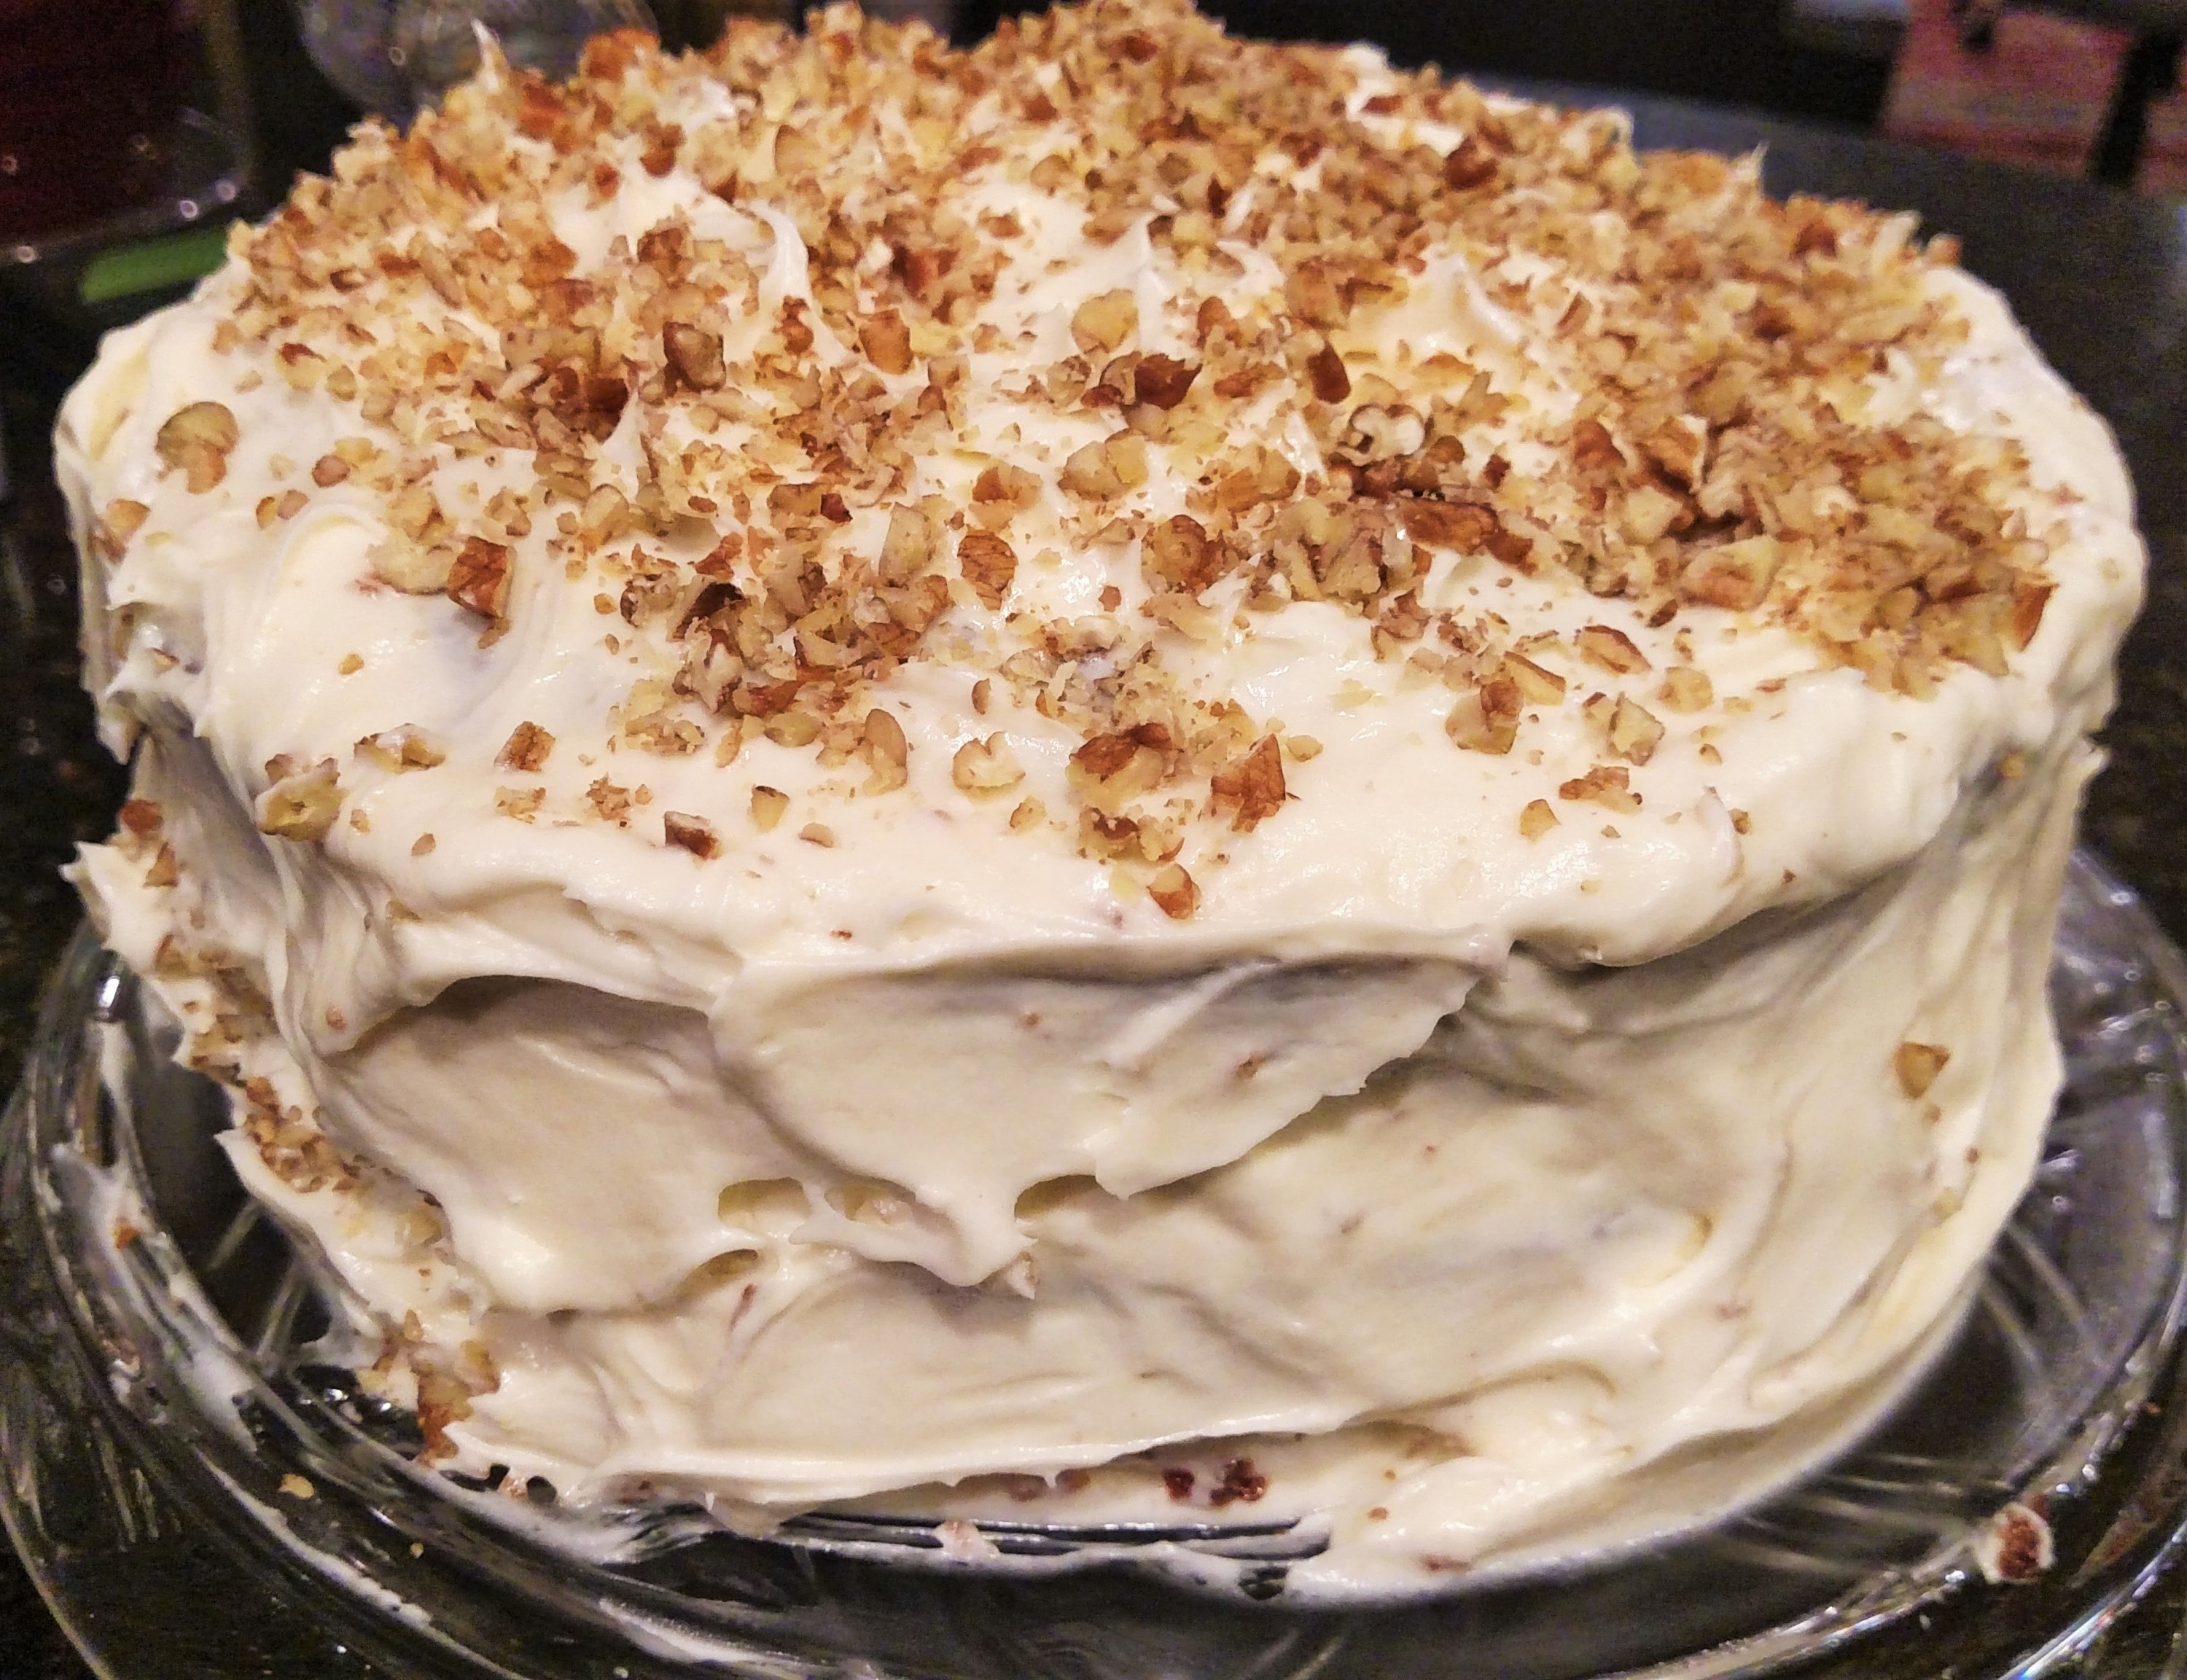 carrot cake, best carrot cake, carrot cake with glaze